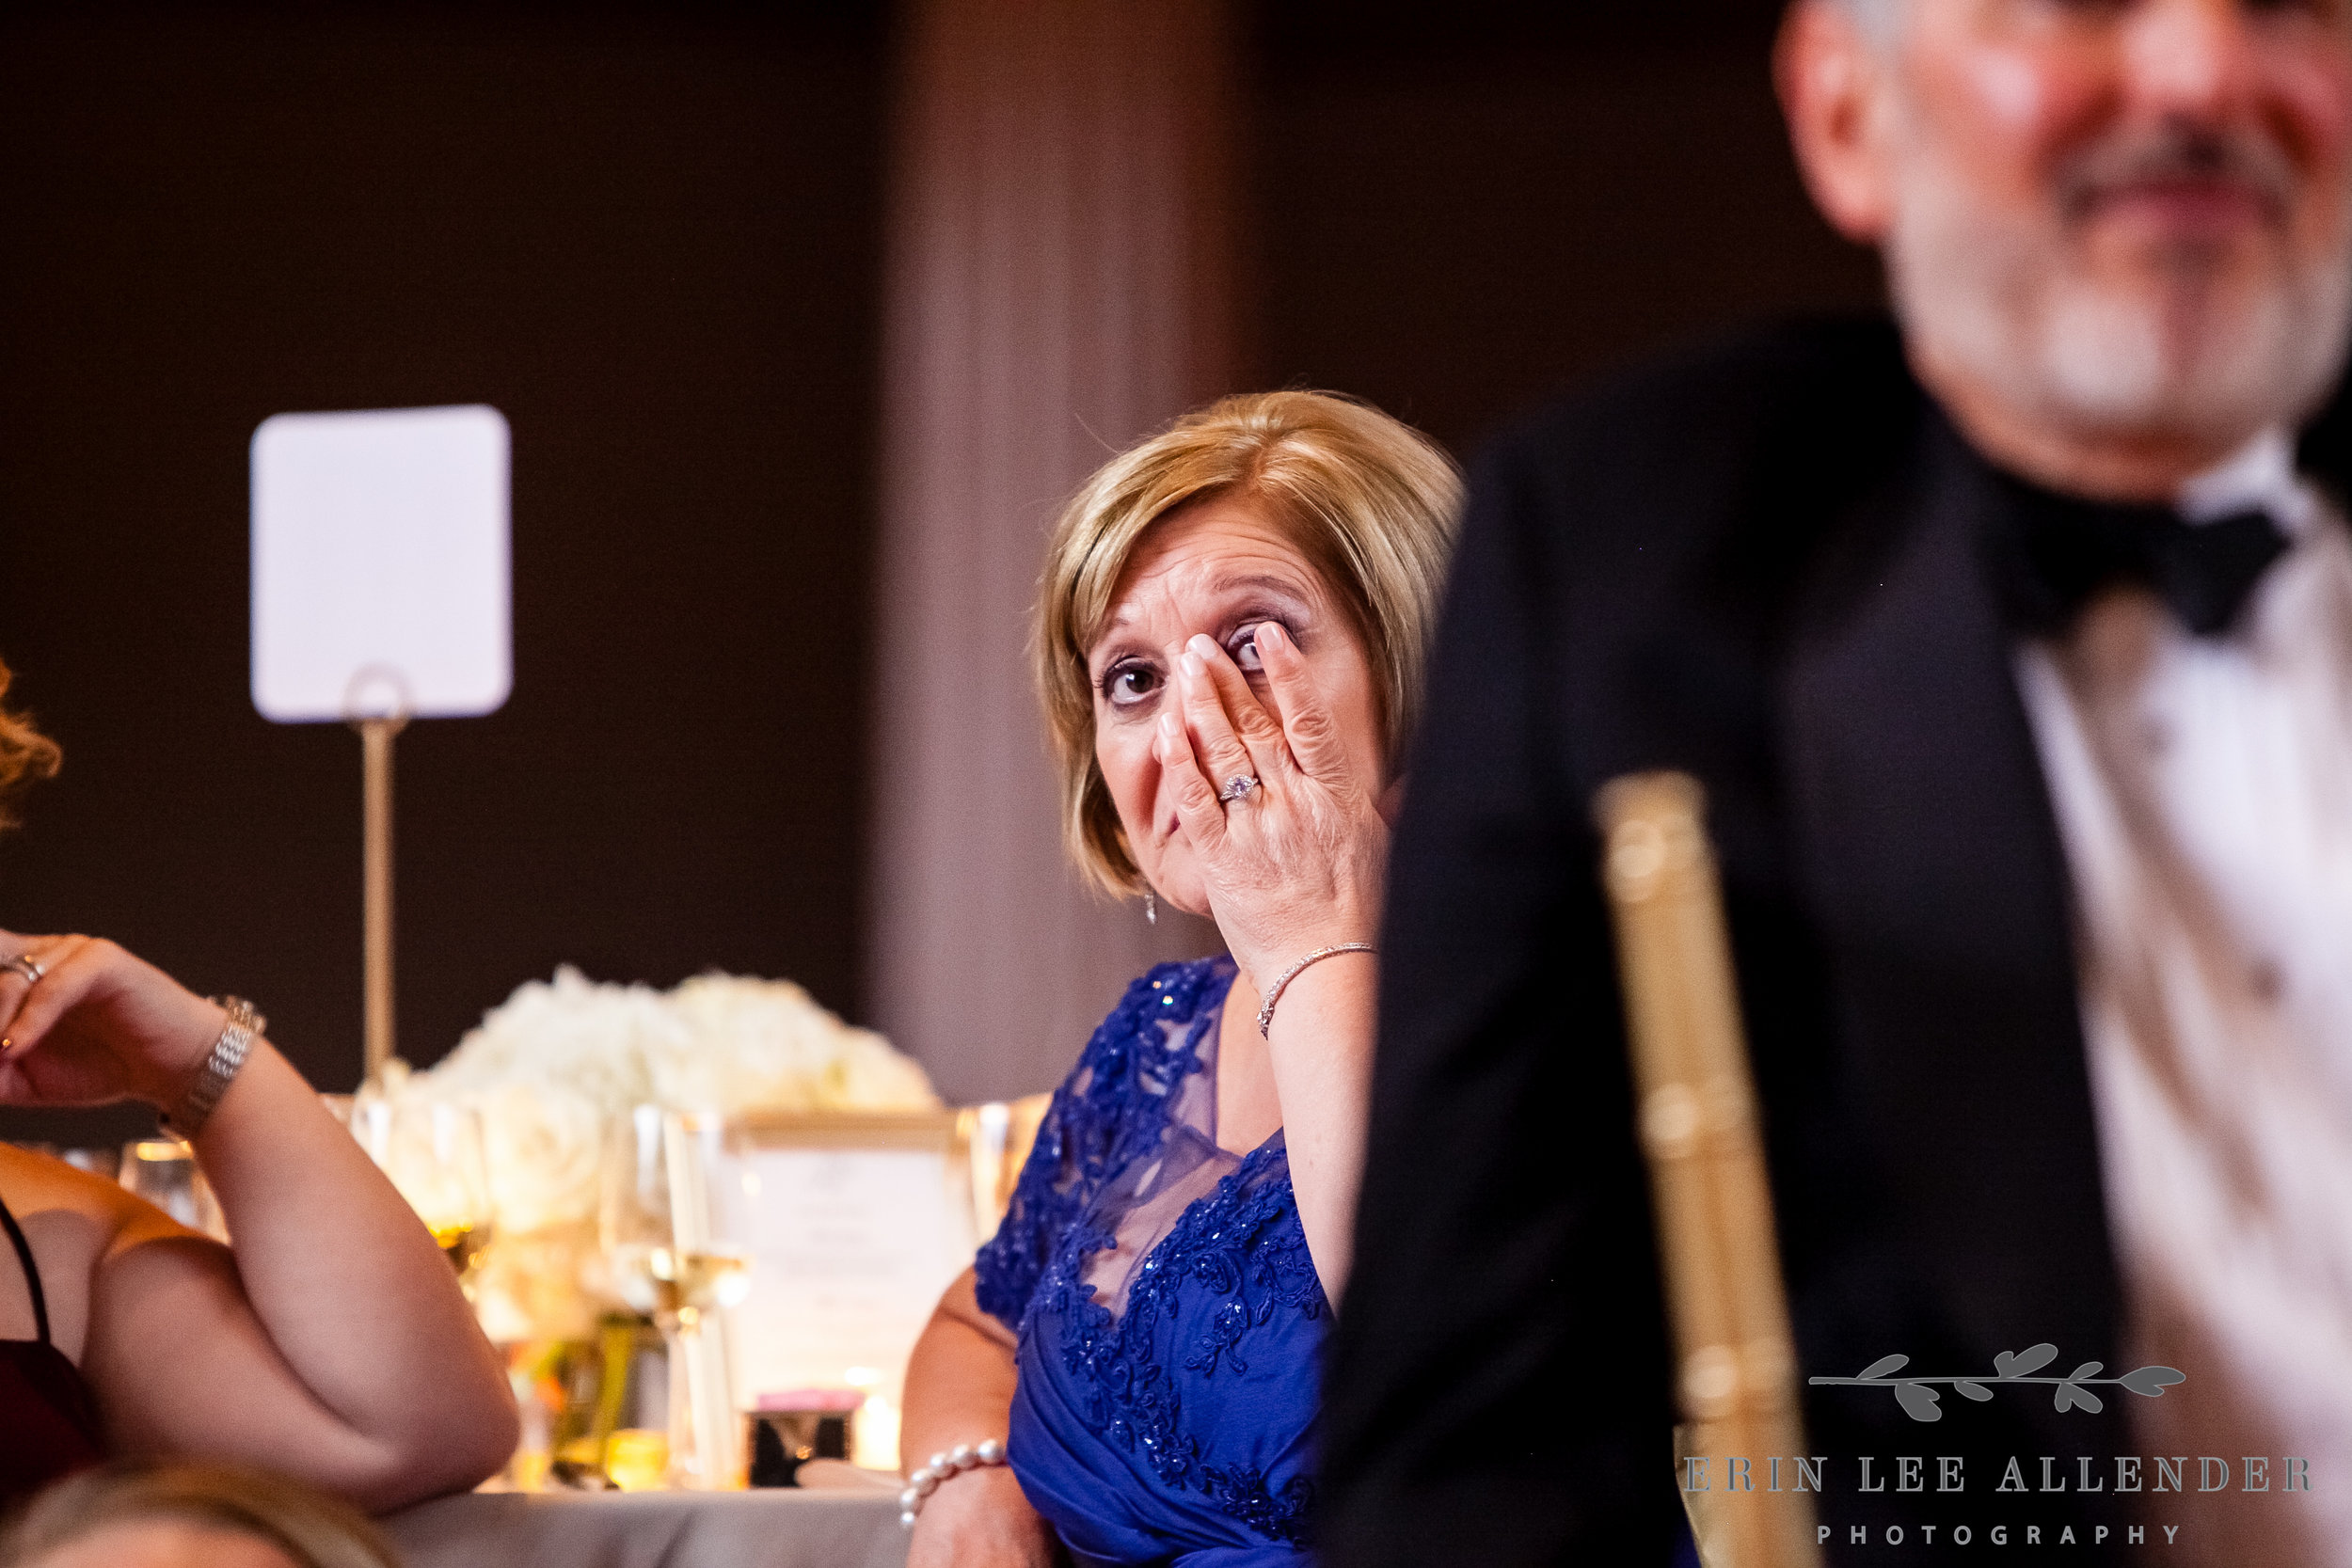 Mother_Of_The_Groom_Cries_During_Toasts